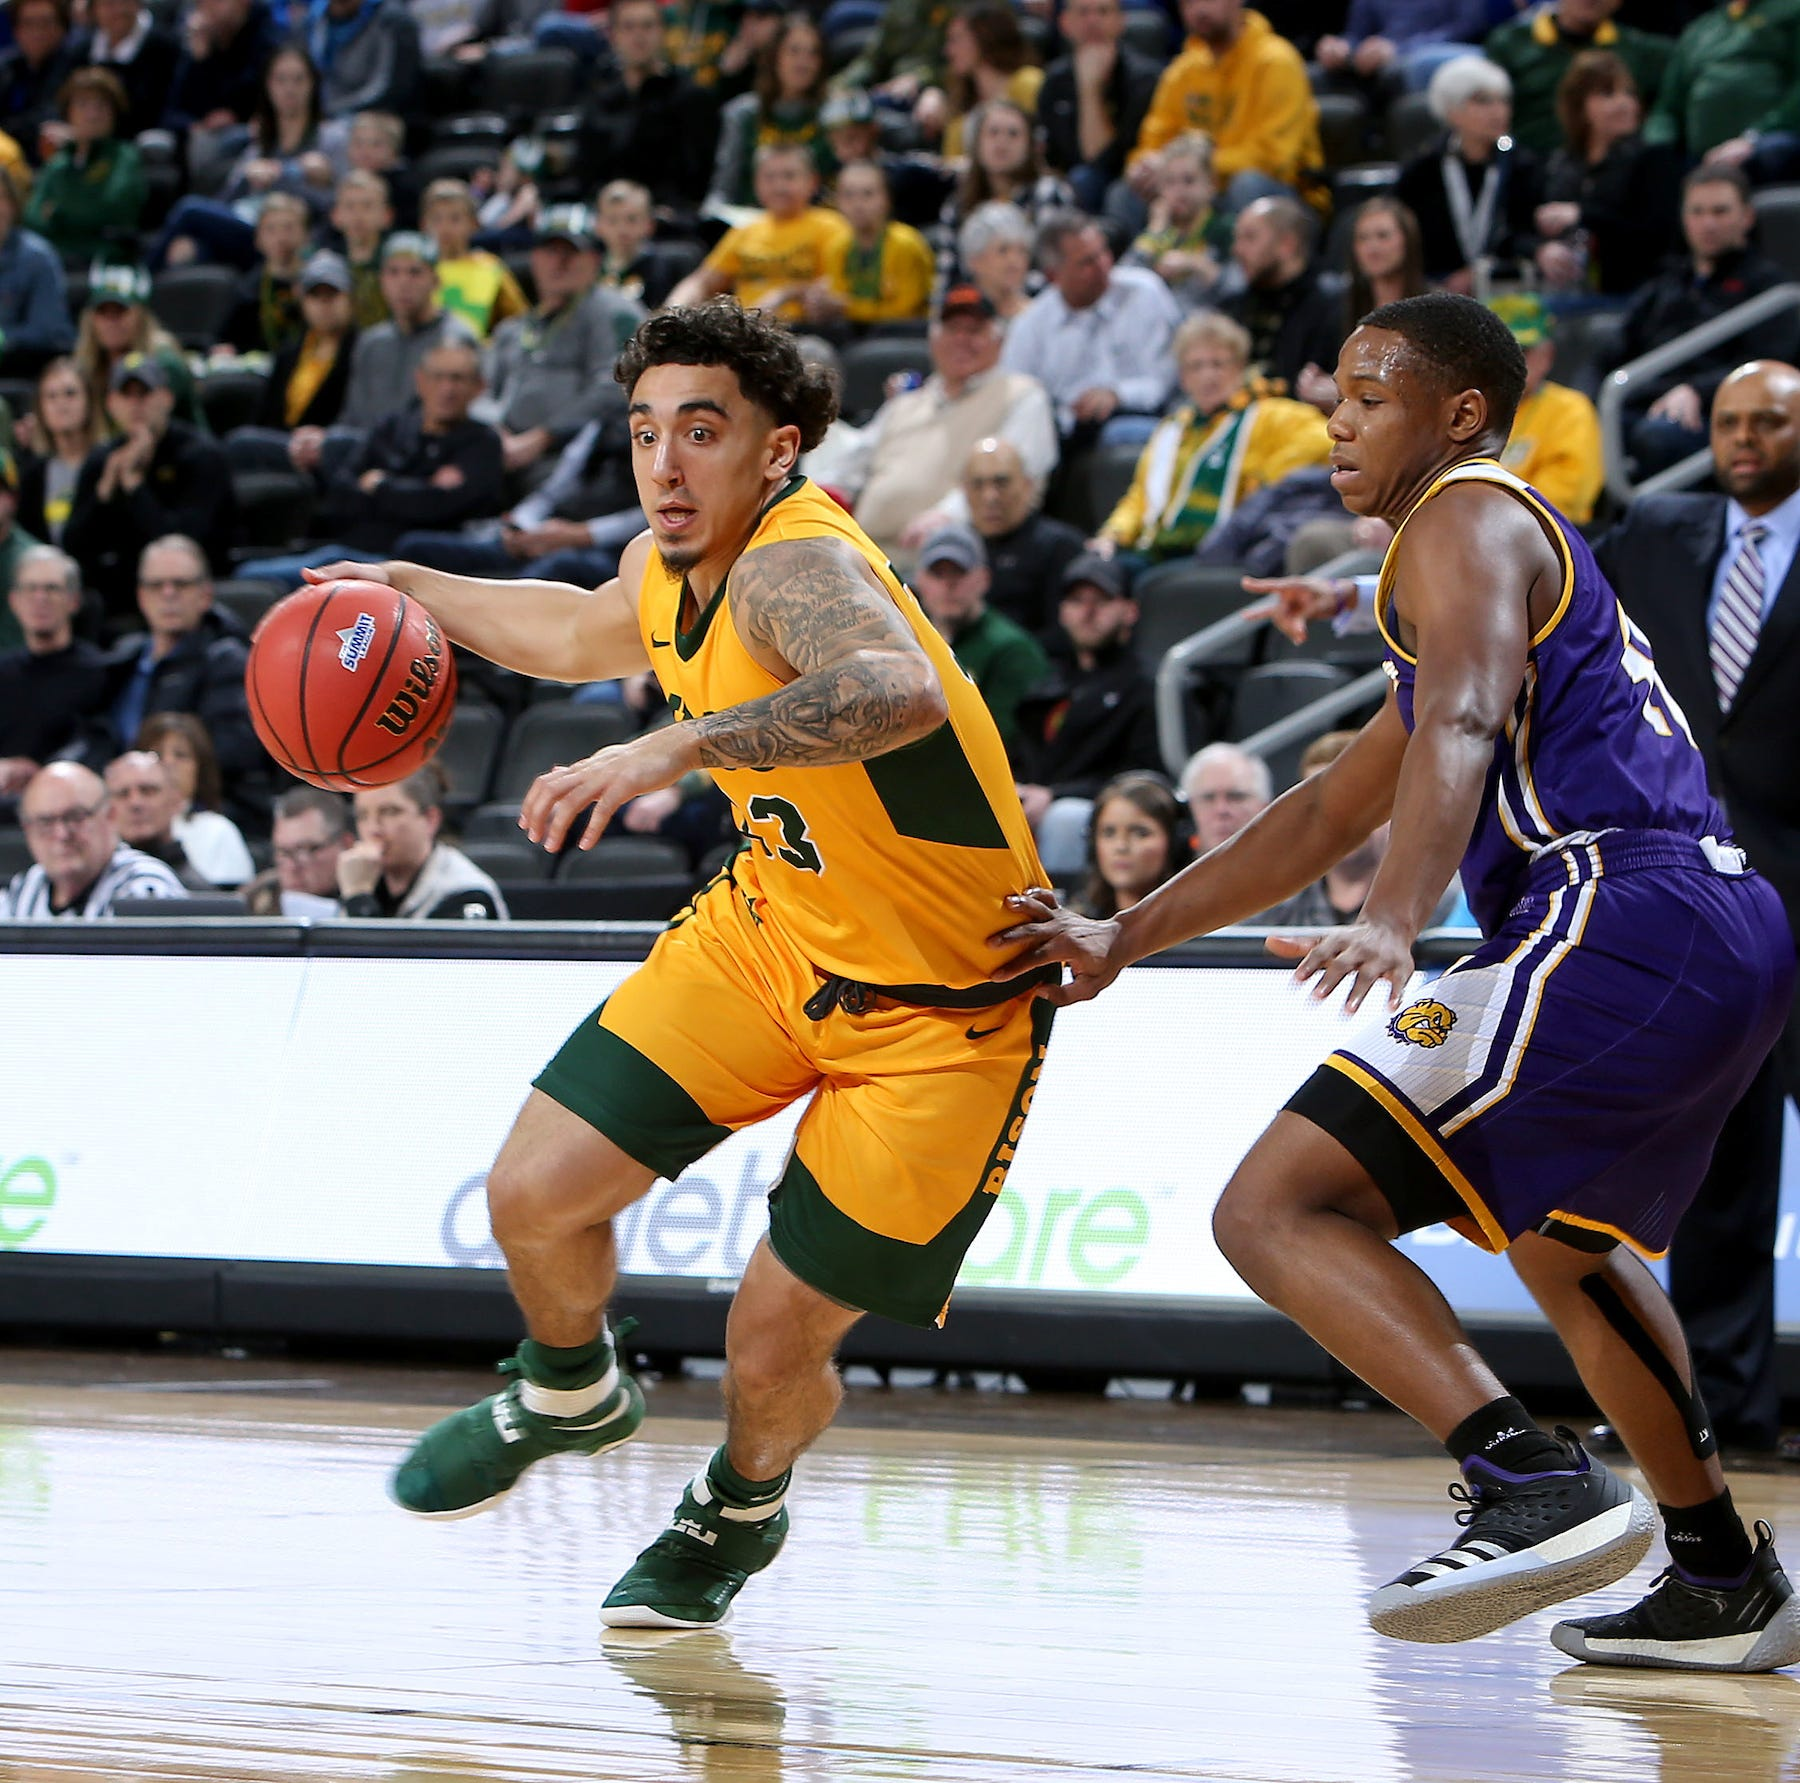 NDSU, Omaha to face off in Summit men's championship